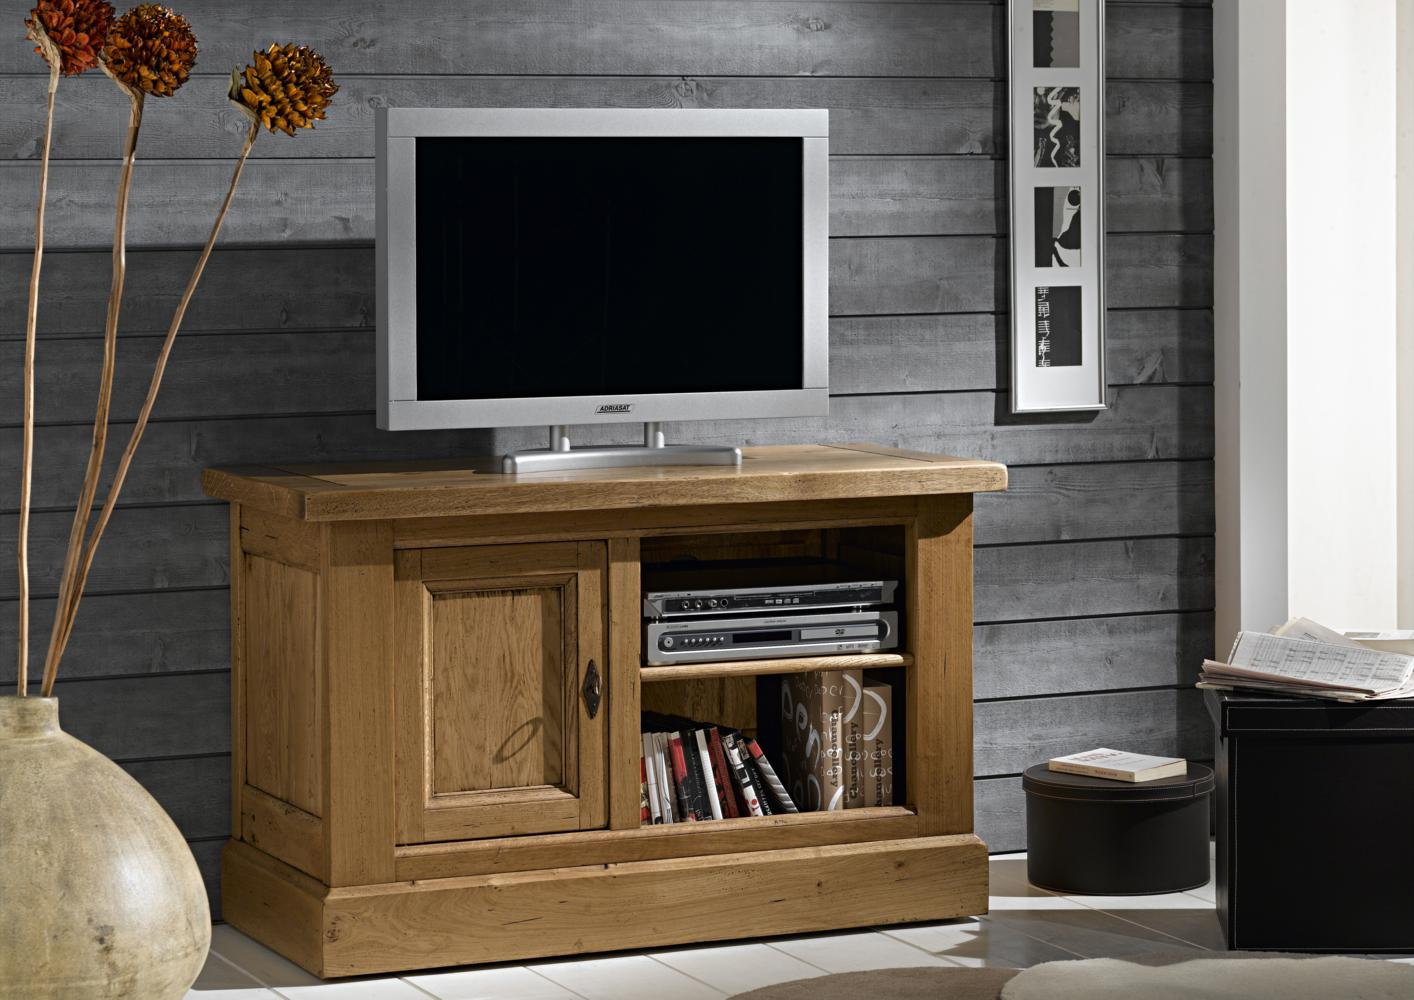 acheter votre meuble tv bas 1 porte 1 niche chez simeuble. Black Bedroom Furniture Sets. Home Design Ideas